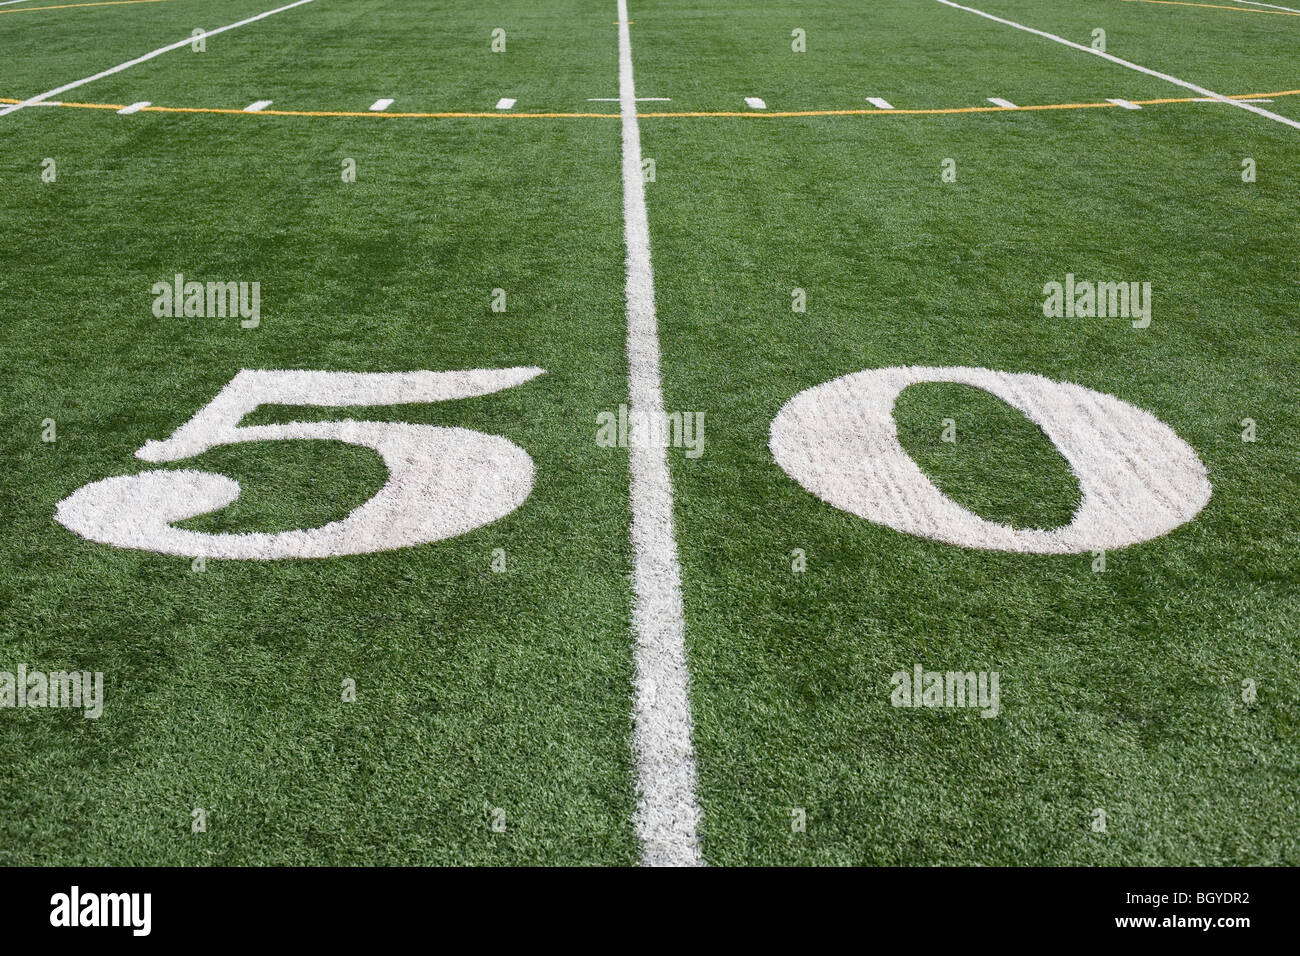 Fifty yard line - Stock Image